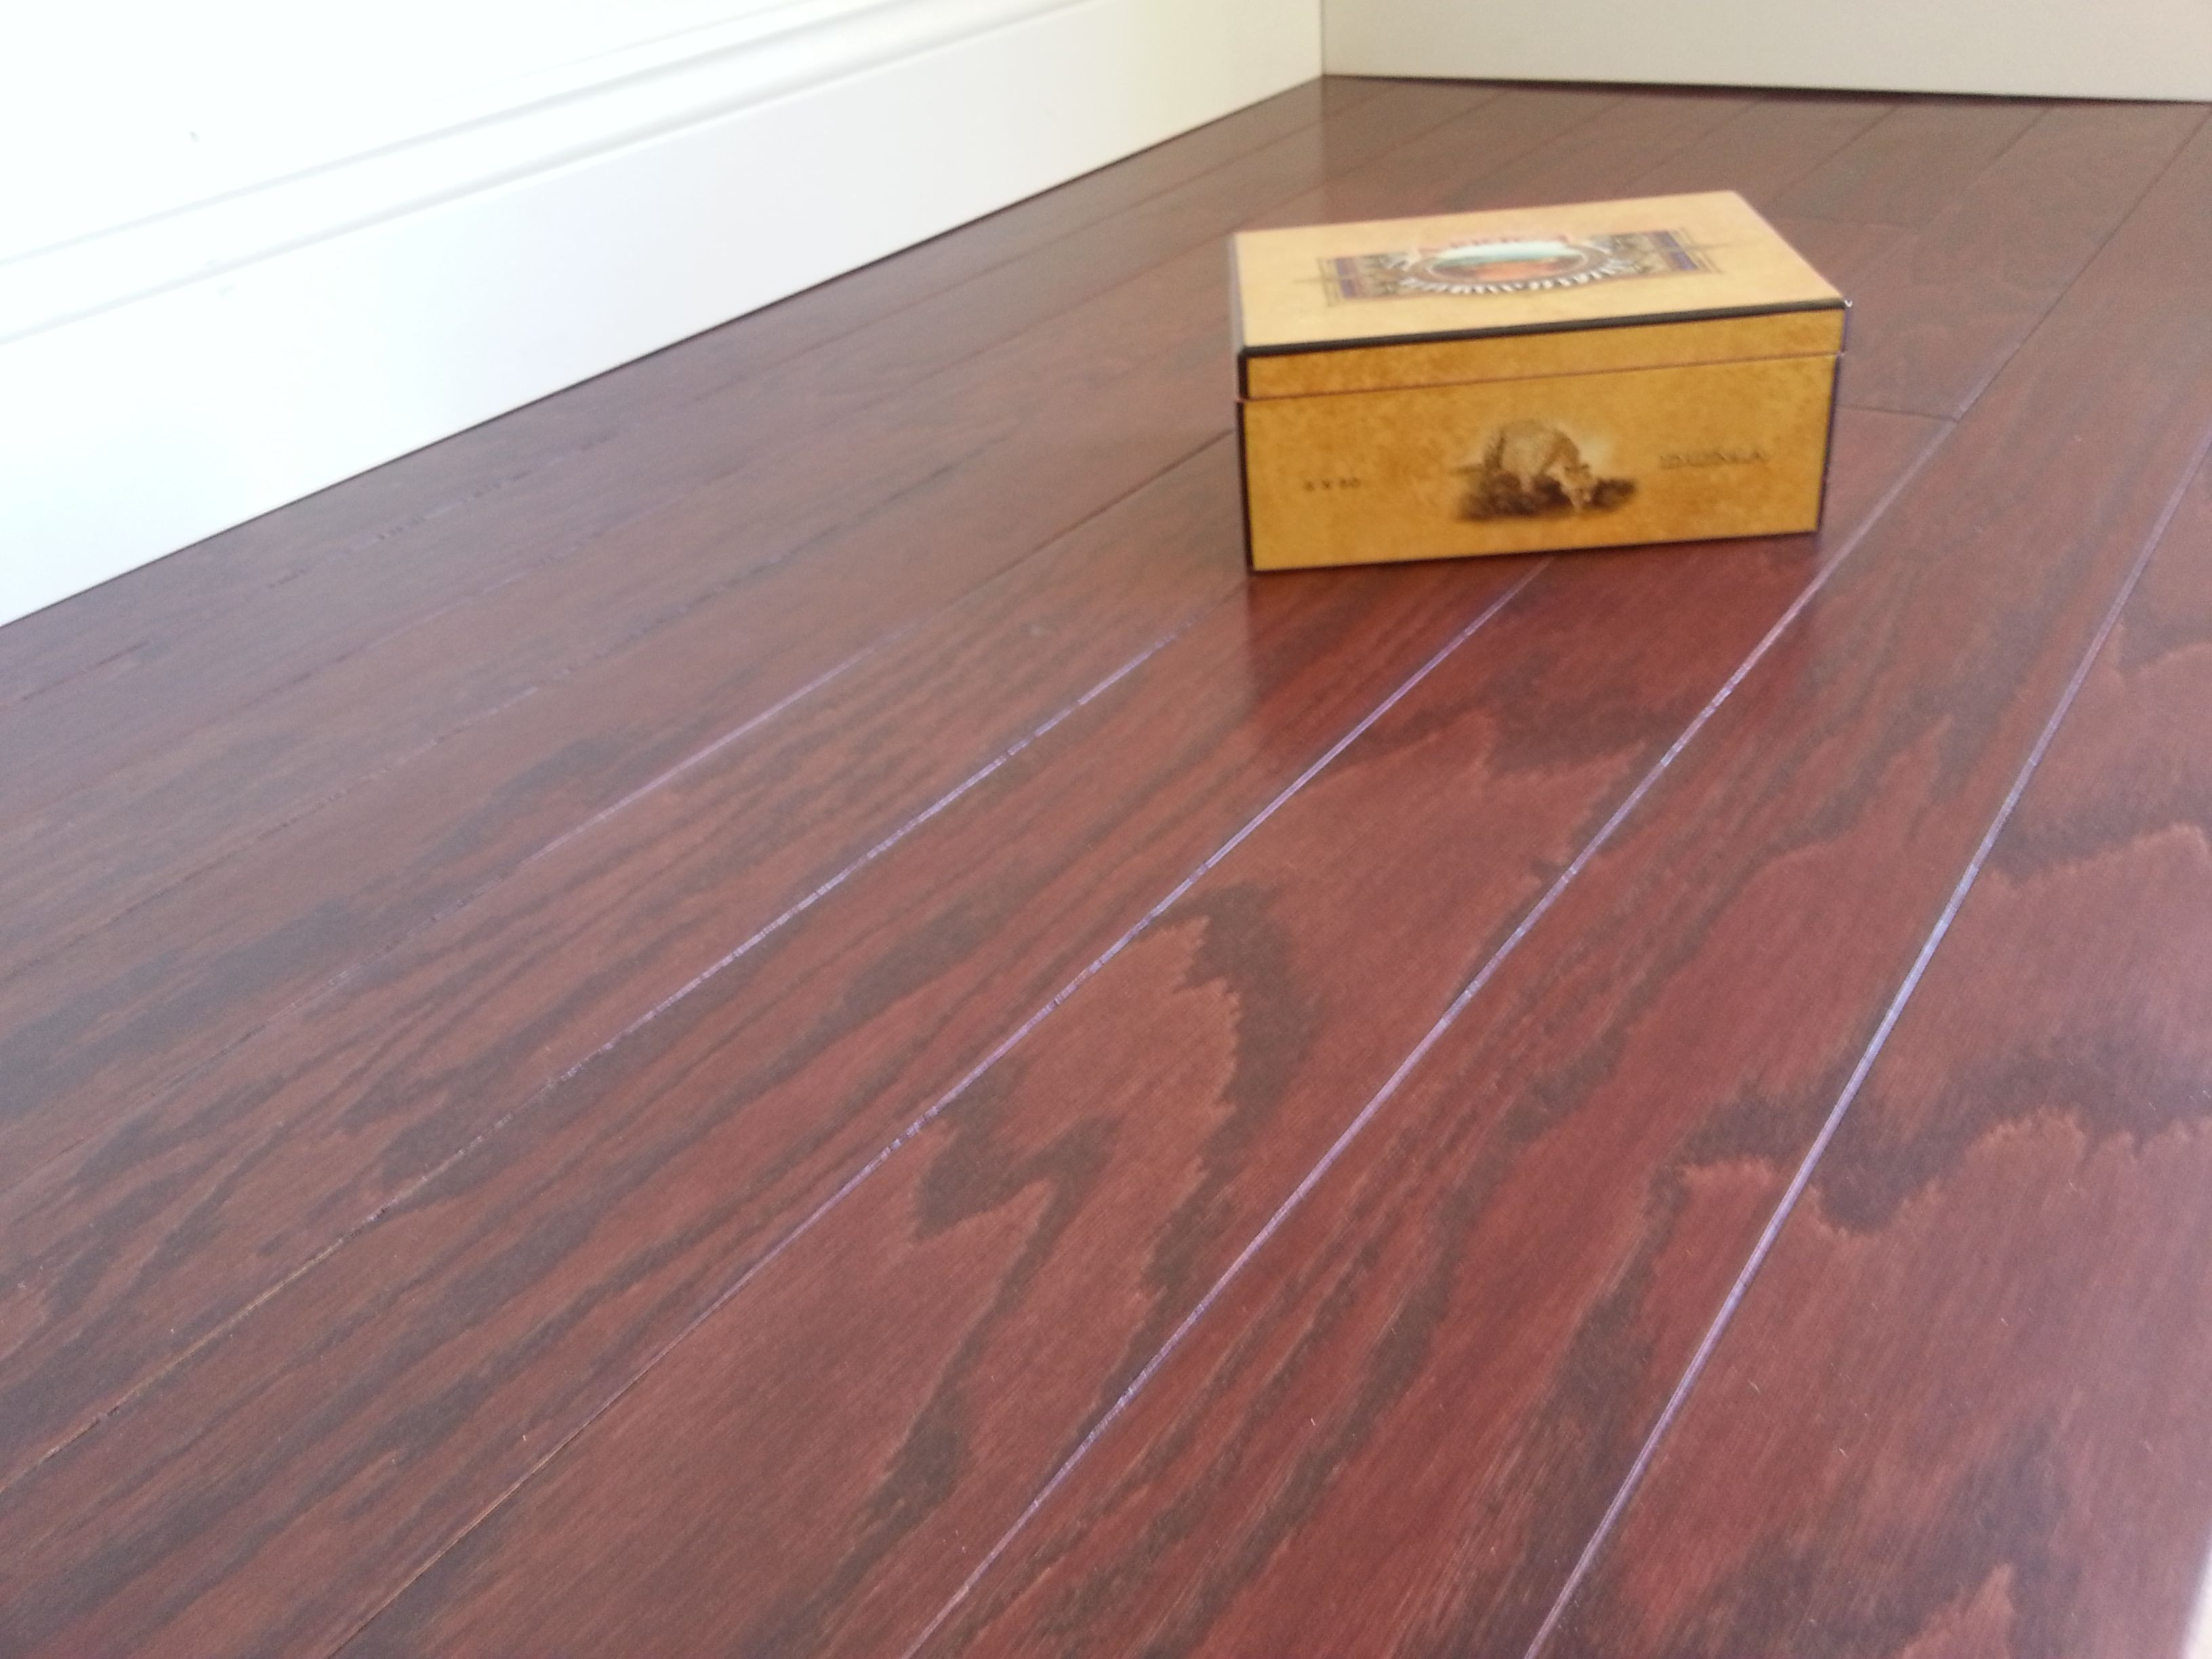 rustic red oak hardwood flooring of 3 1 4 symphonic engineered oak merlot hardwood flooring as low as throughout 3 1 4 symphonic engineered oak merlot hardwood flooring as low as 3 23 sf